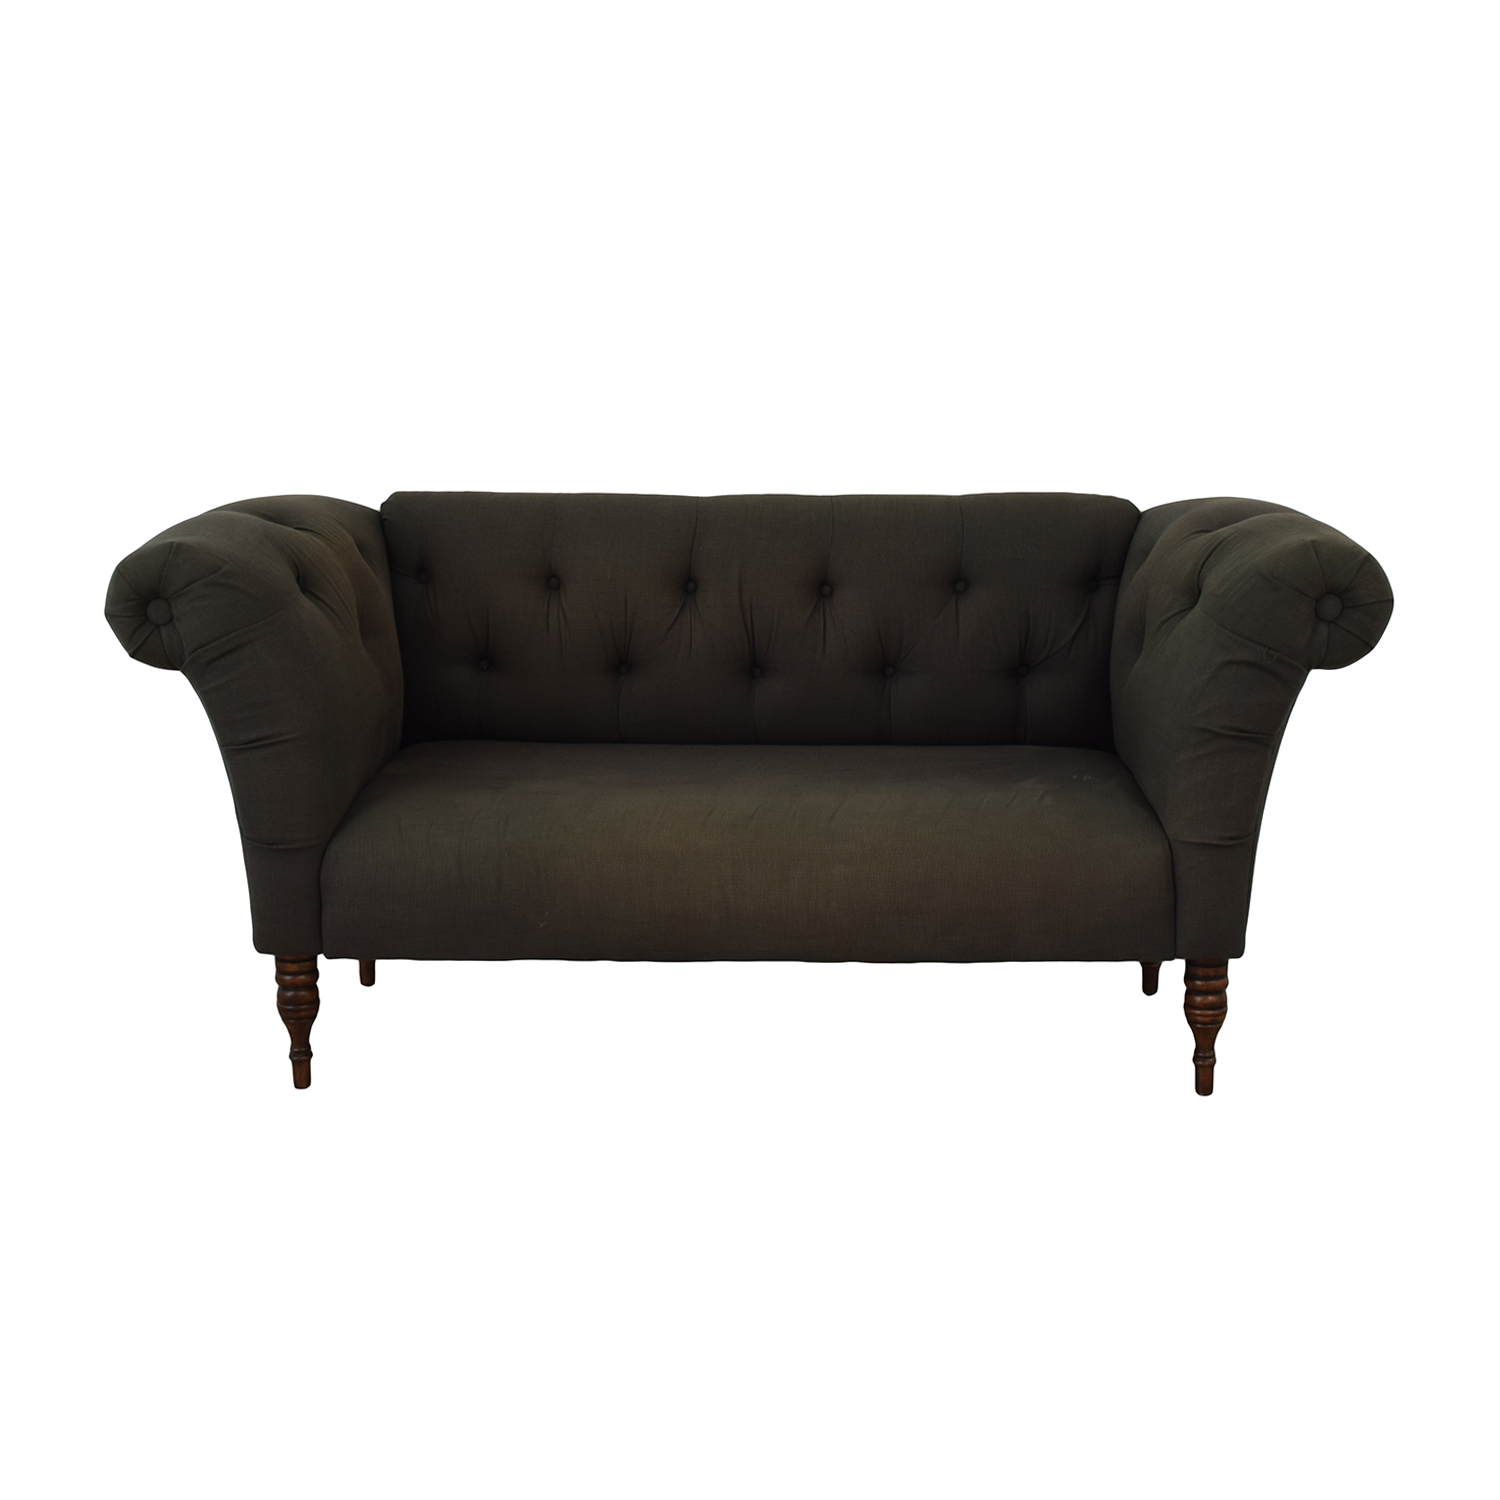 Urban Outfitters Grey Tufted Sofa Urban Outfitters